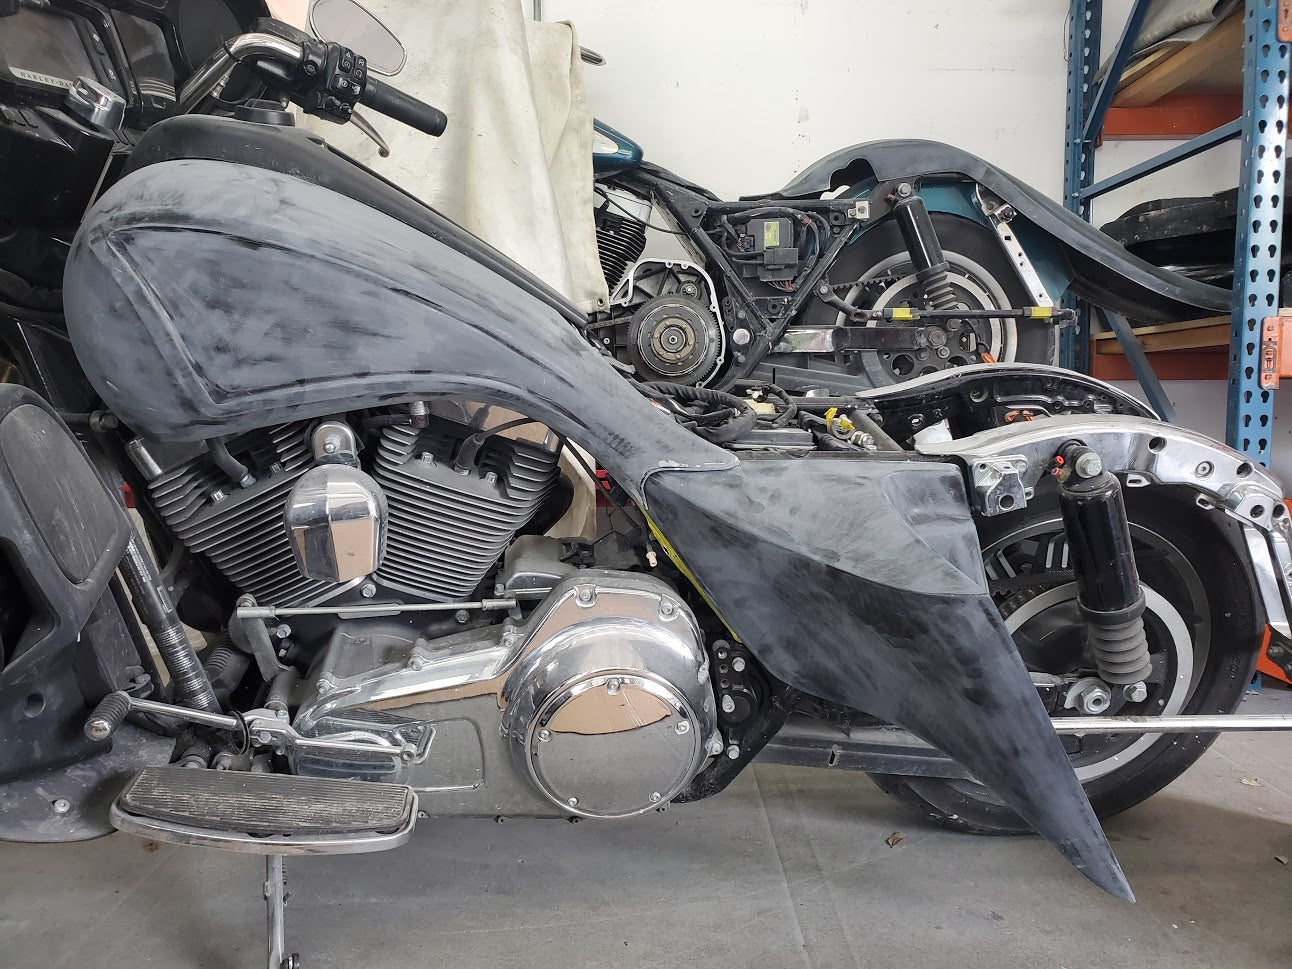 Harley Davidson Stretched Extended 6 Gallon tank Scalloped Shroud Covers 2008-Current